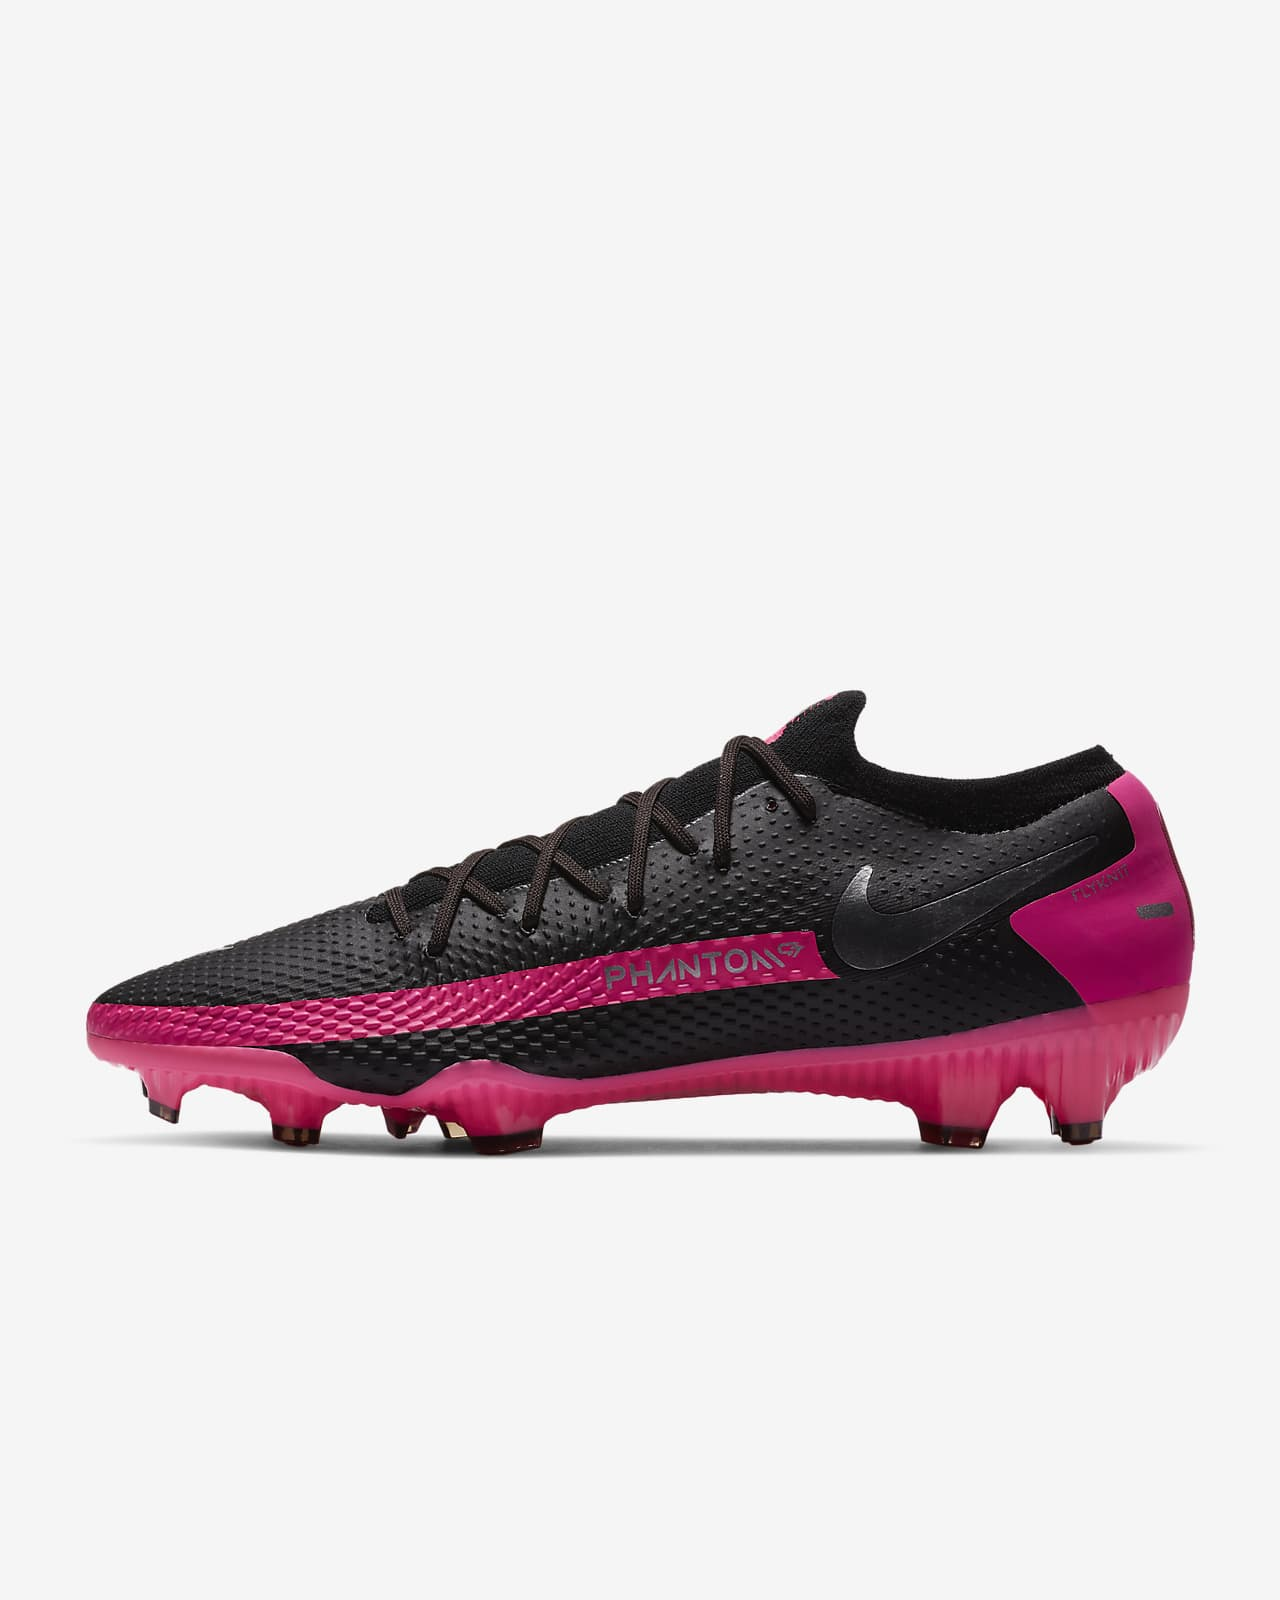 Nike Phantom GT Pro FG Firm-Ground Football Boot